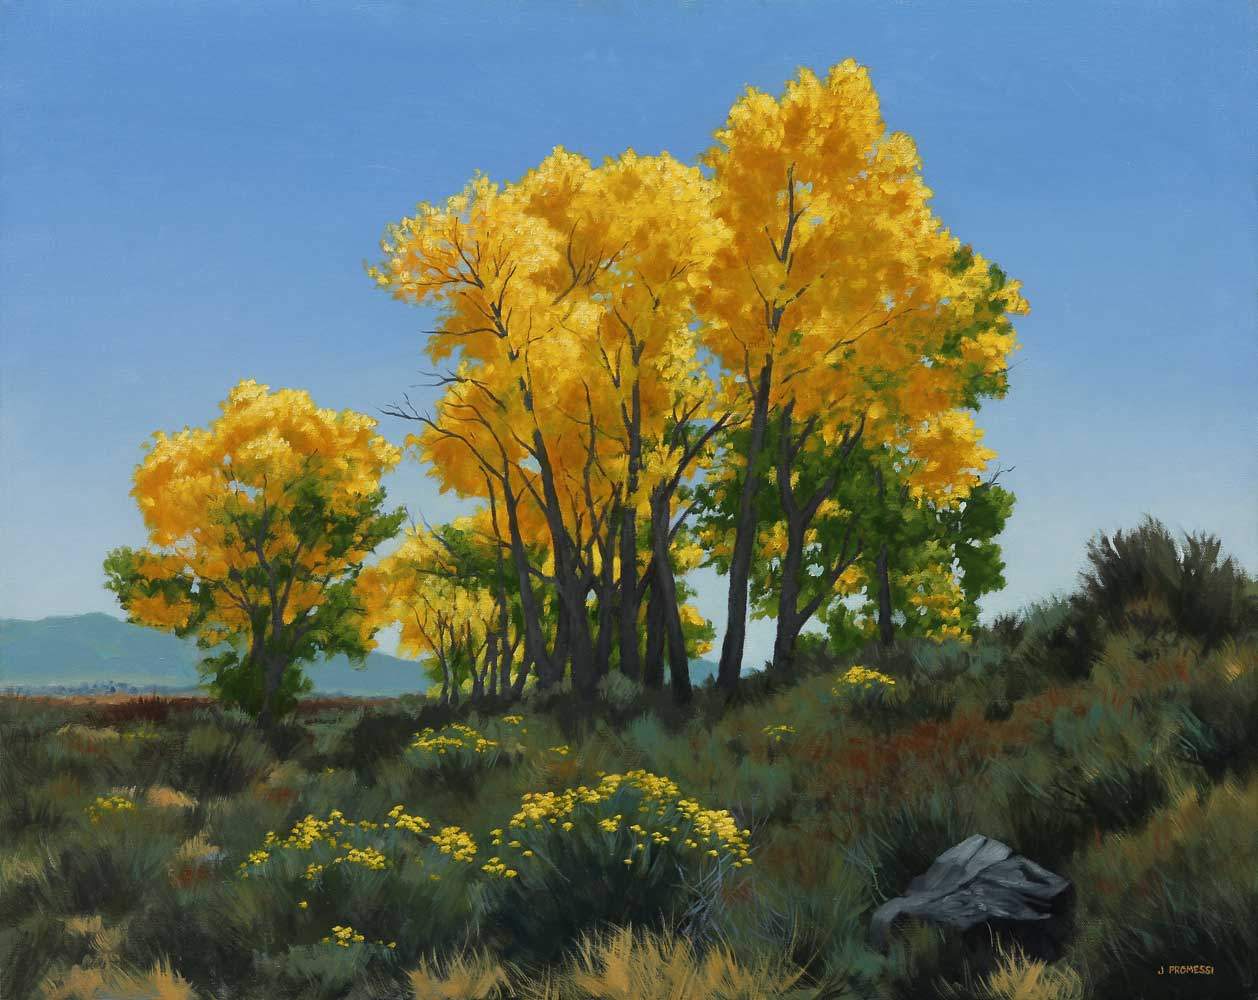 Cottonwoods Nevada, landscape by Promessi